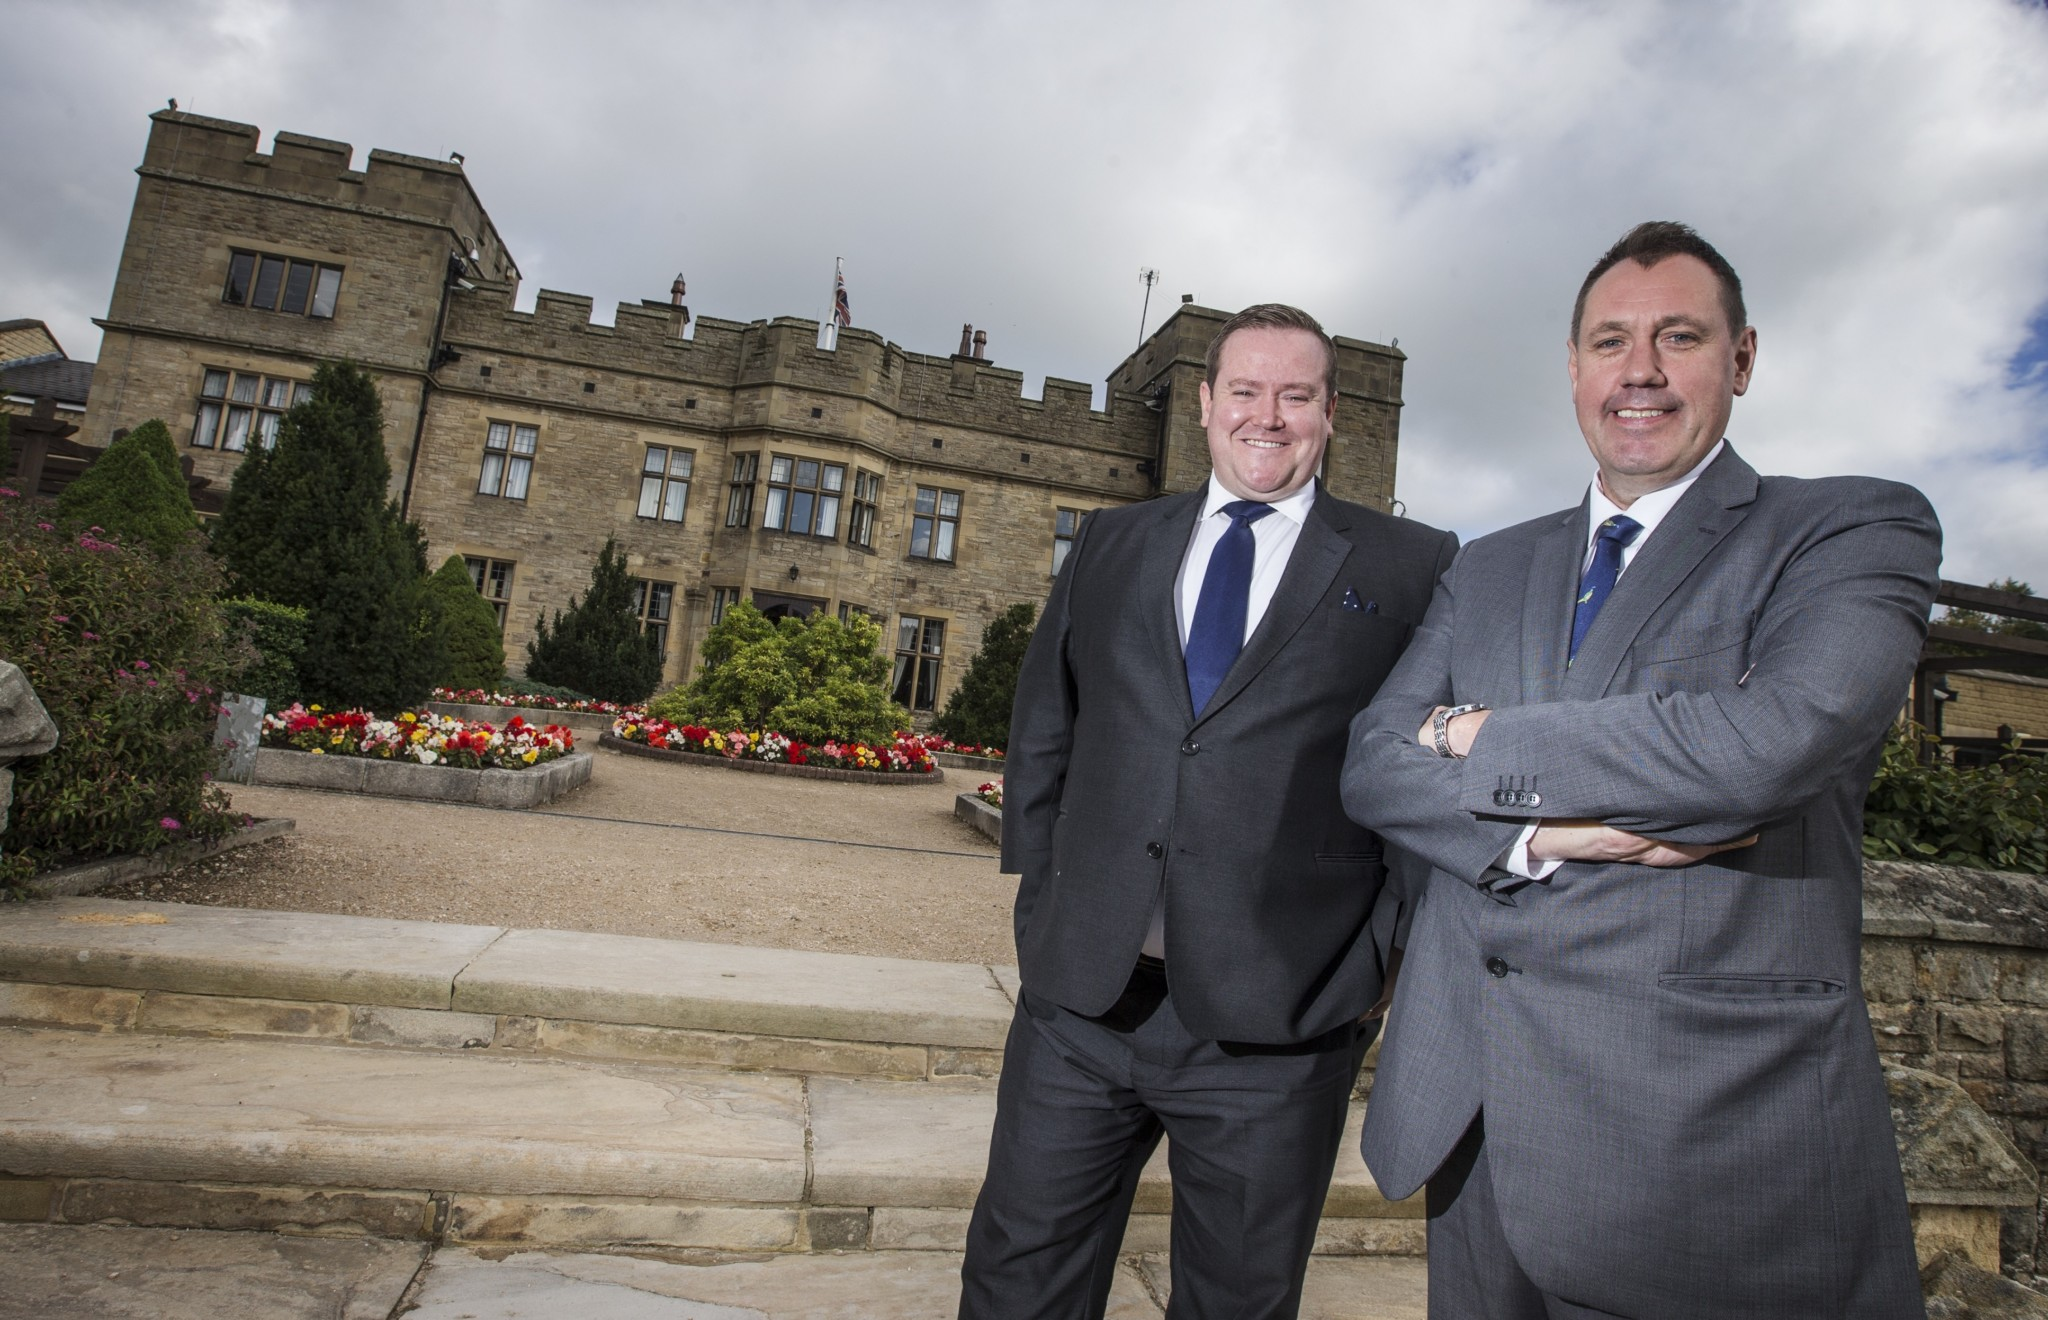 Slaley Hall hotel manager James O'Donnell and general manager Andrew Fox